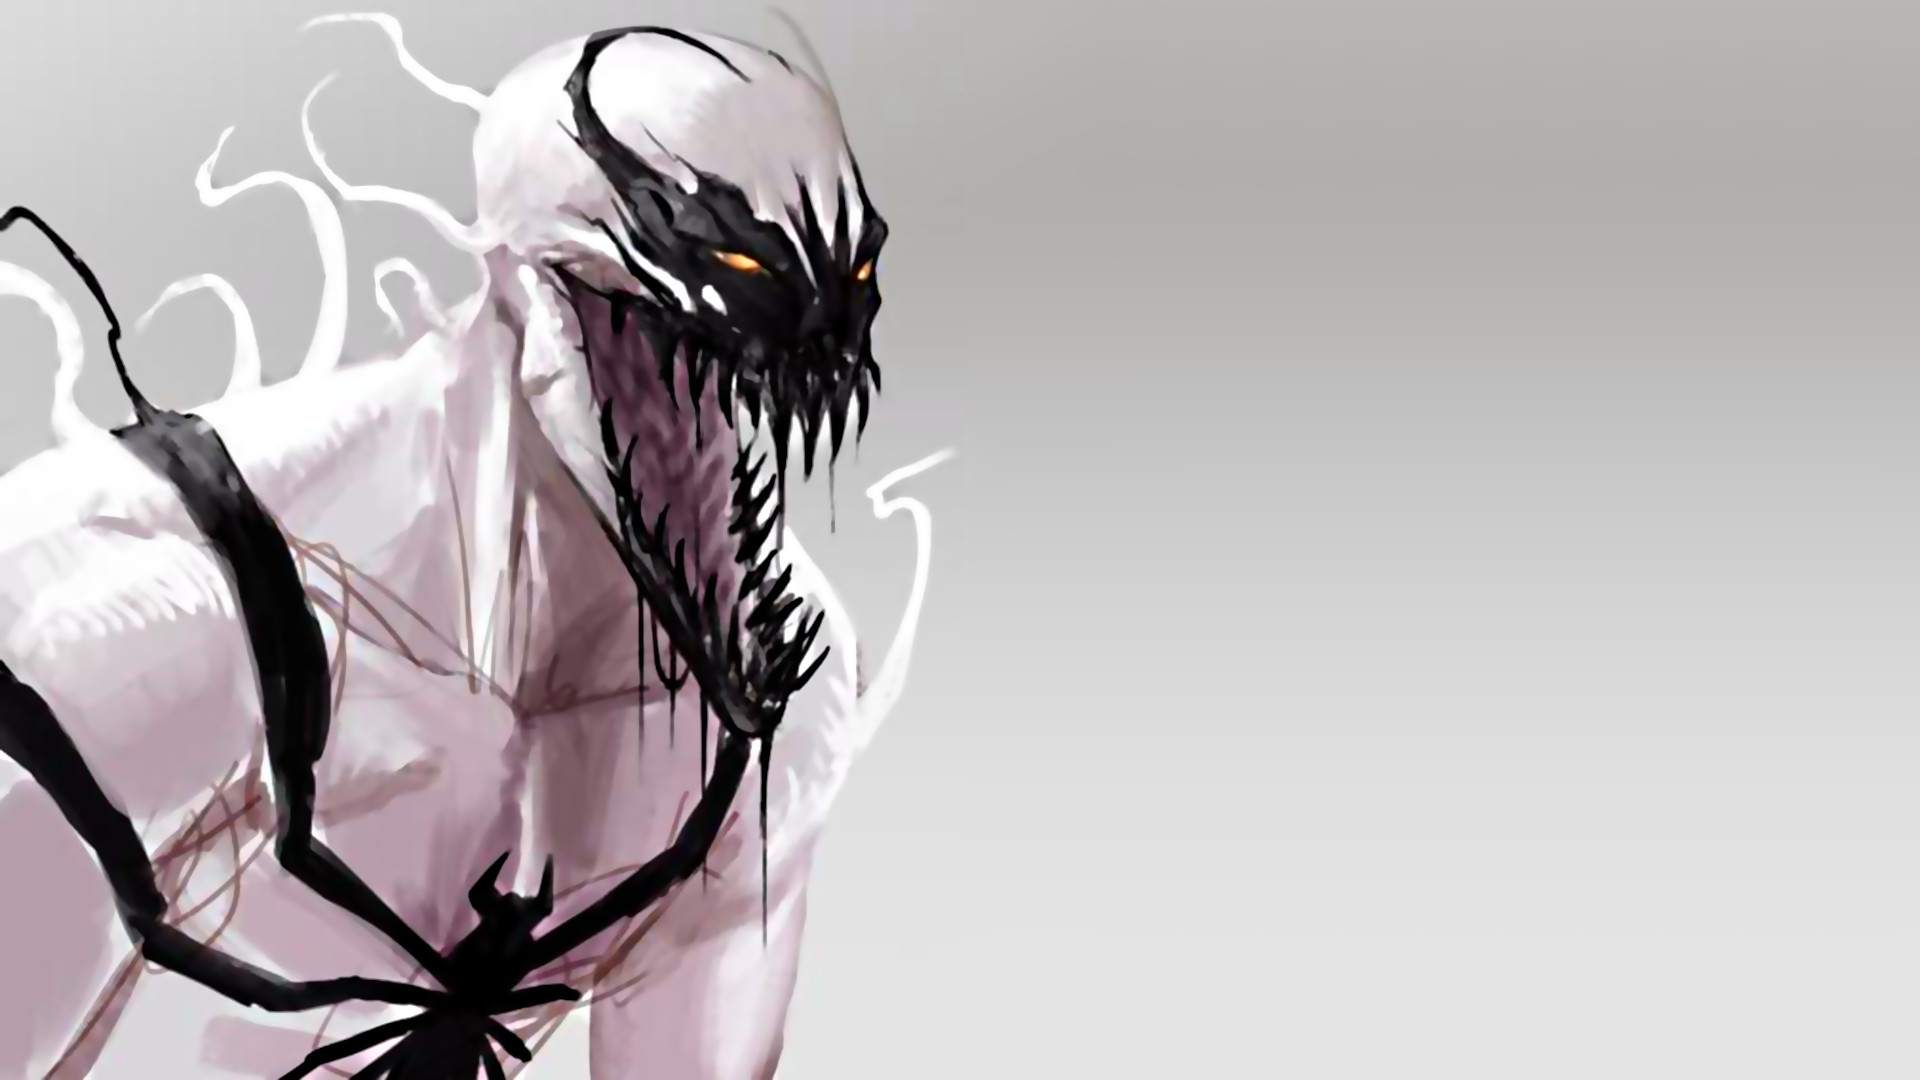 Anti Venom Wallpaper Iphone with HD Wallpaper Resolution px 1.32  MB Movies 1080p Wallpapers Thunderbolts